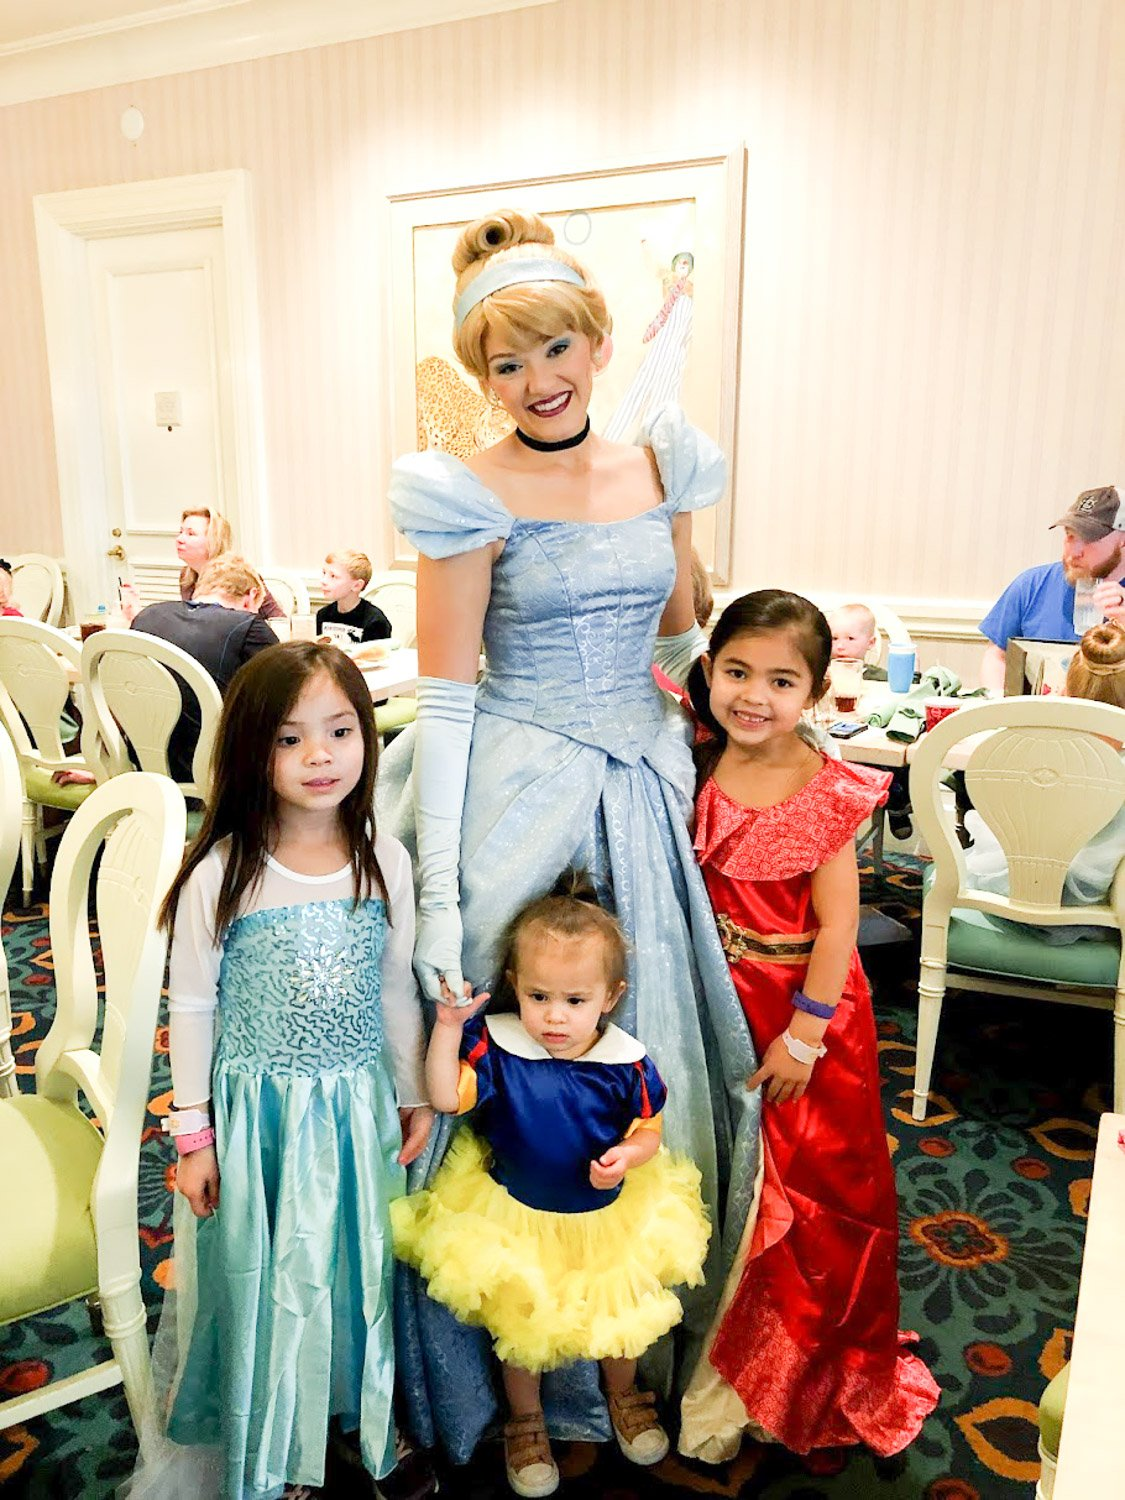 Disney restaurant review at 1900 park fare with Cinderella photo